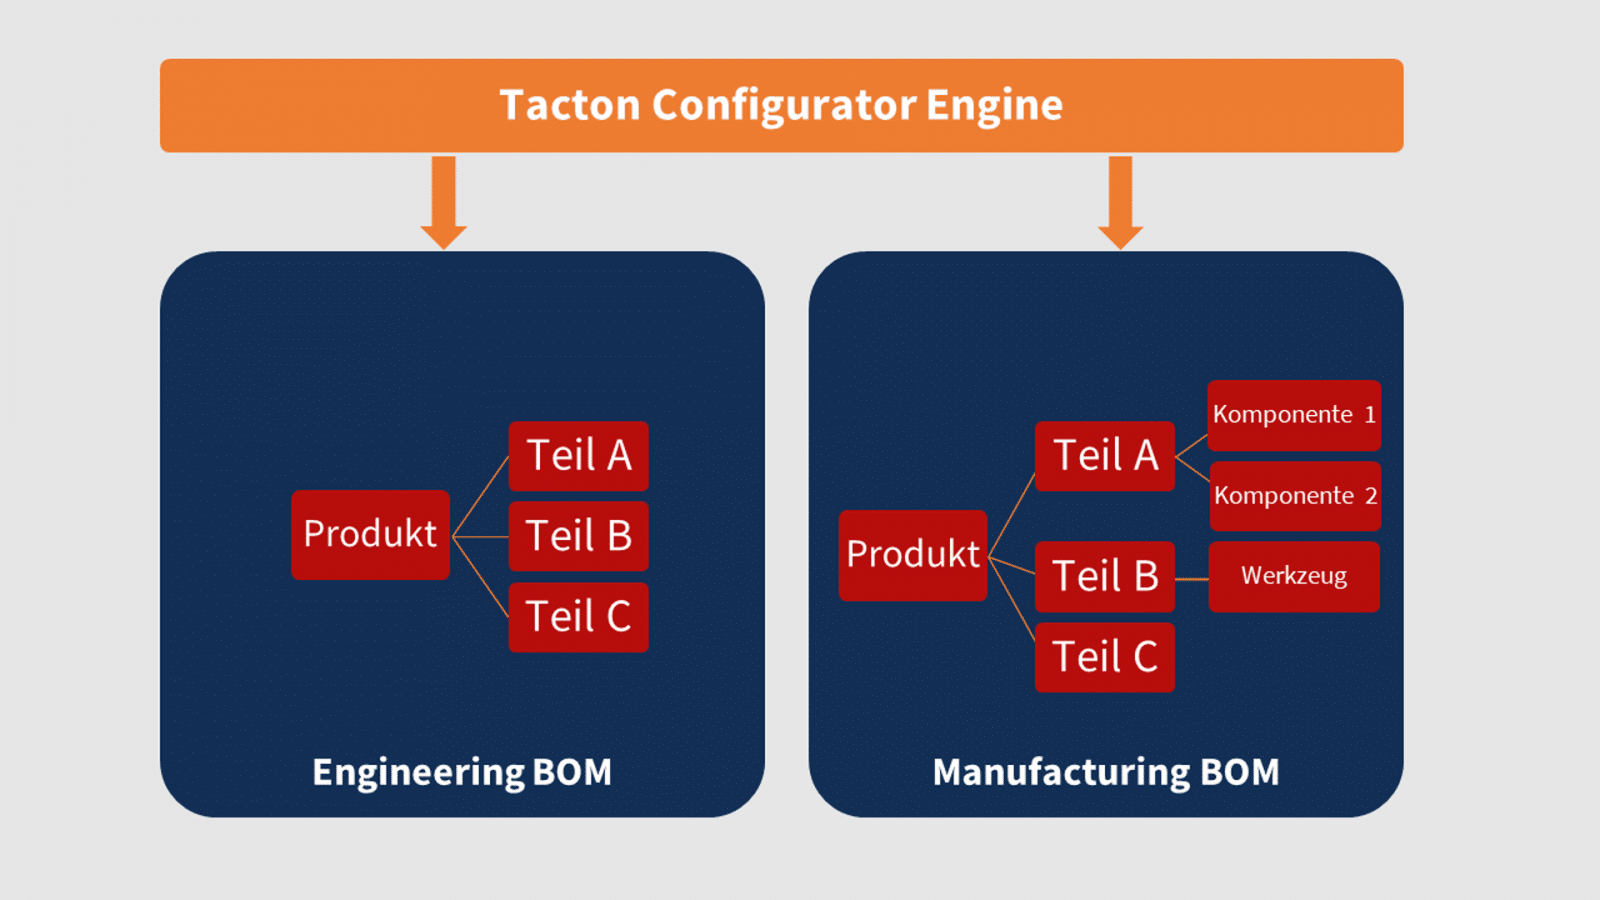 Tacton-Configurator-Engine